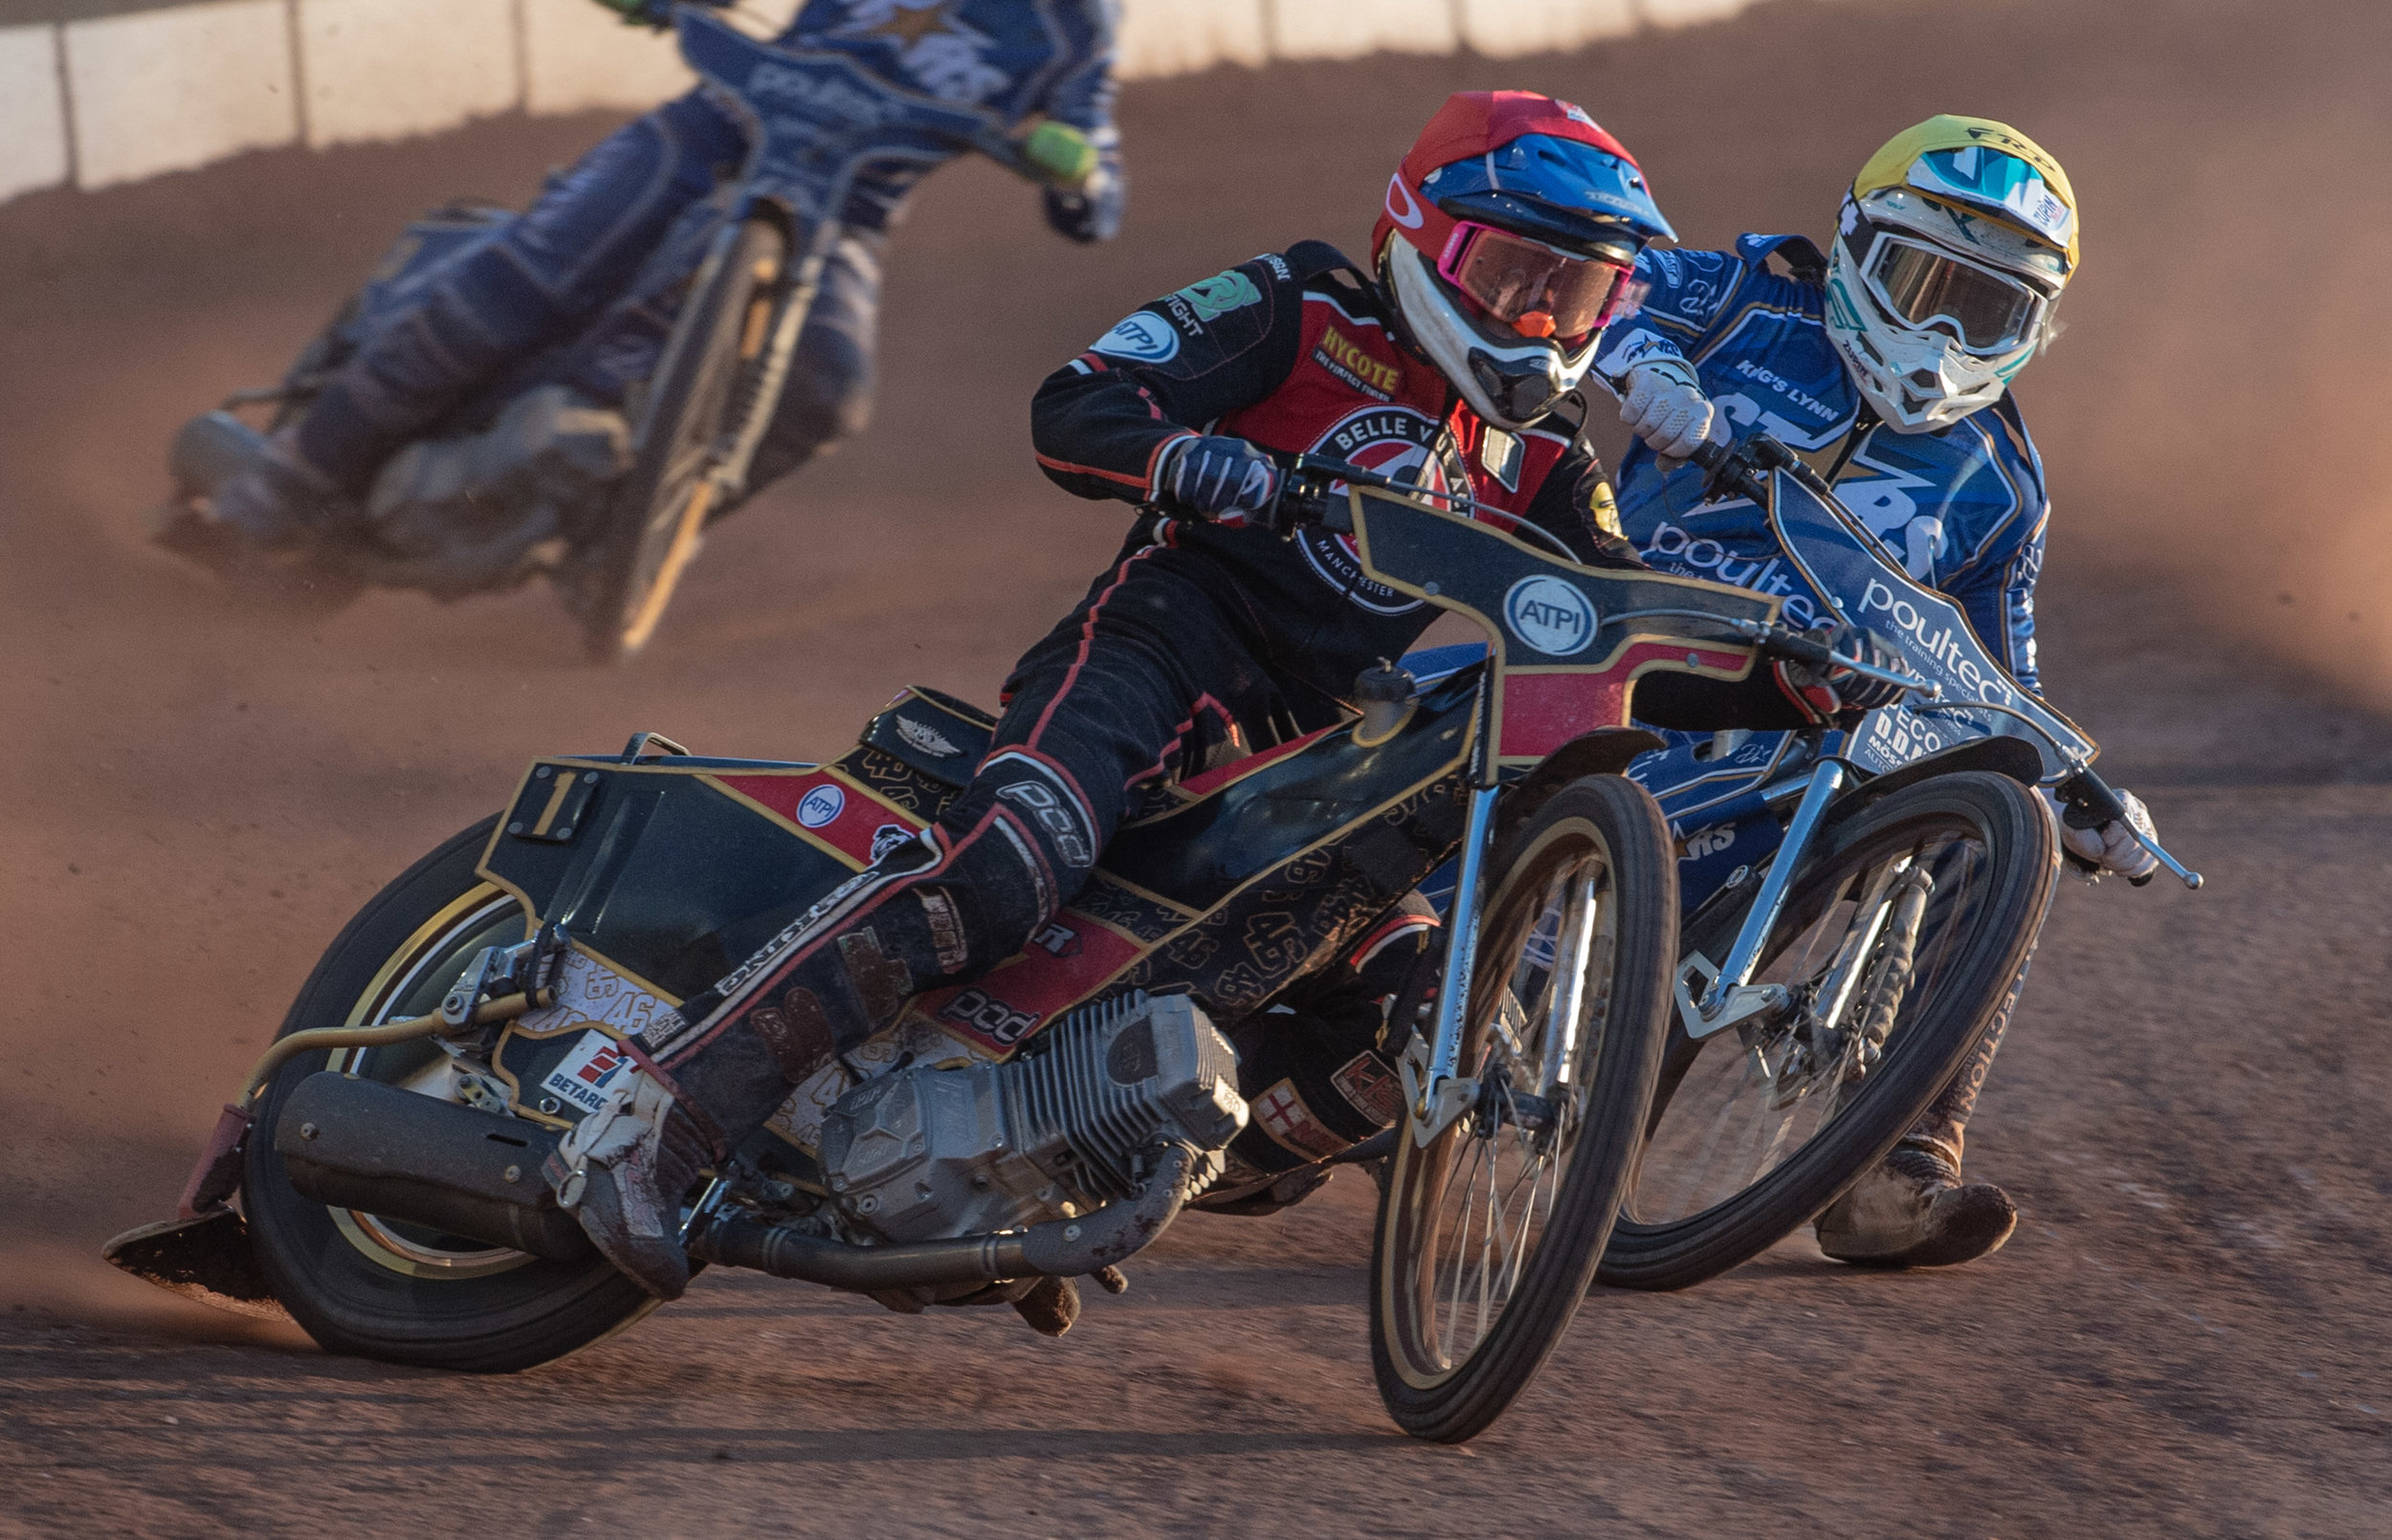 Belle Vue reigned supreme against the Stars in Manchester, but can they replicate in Norfolk?